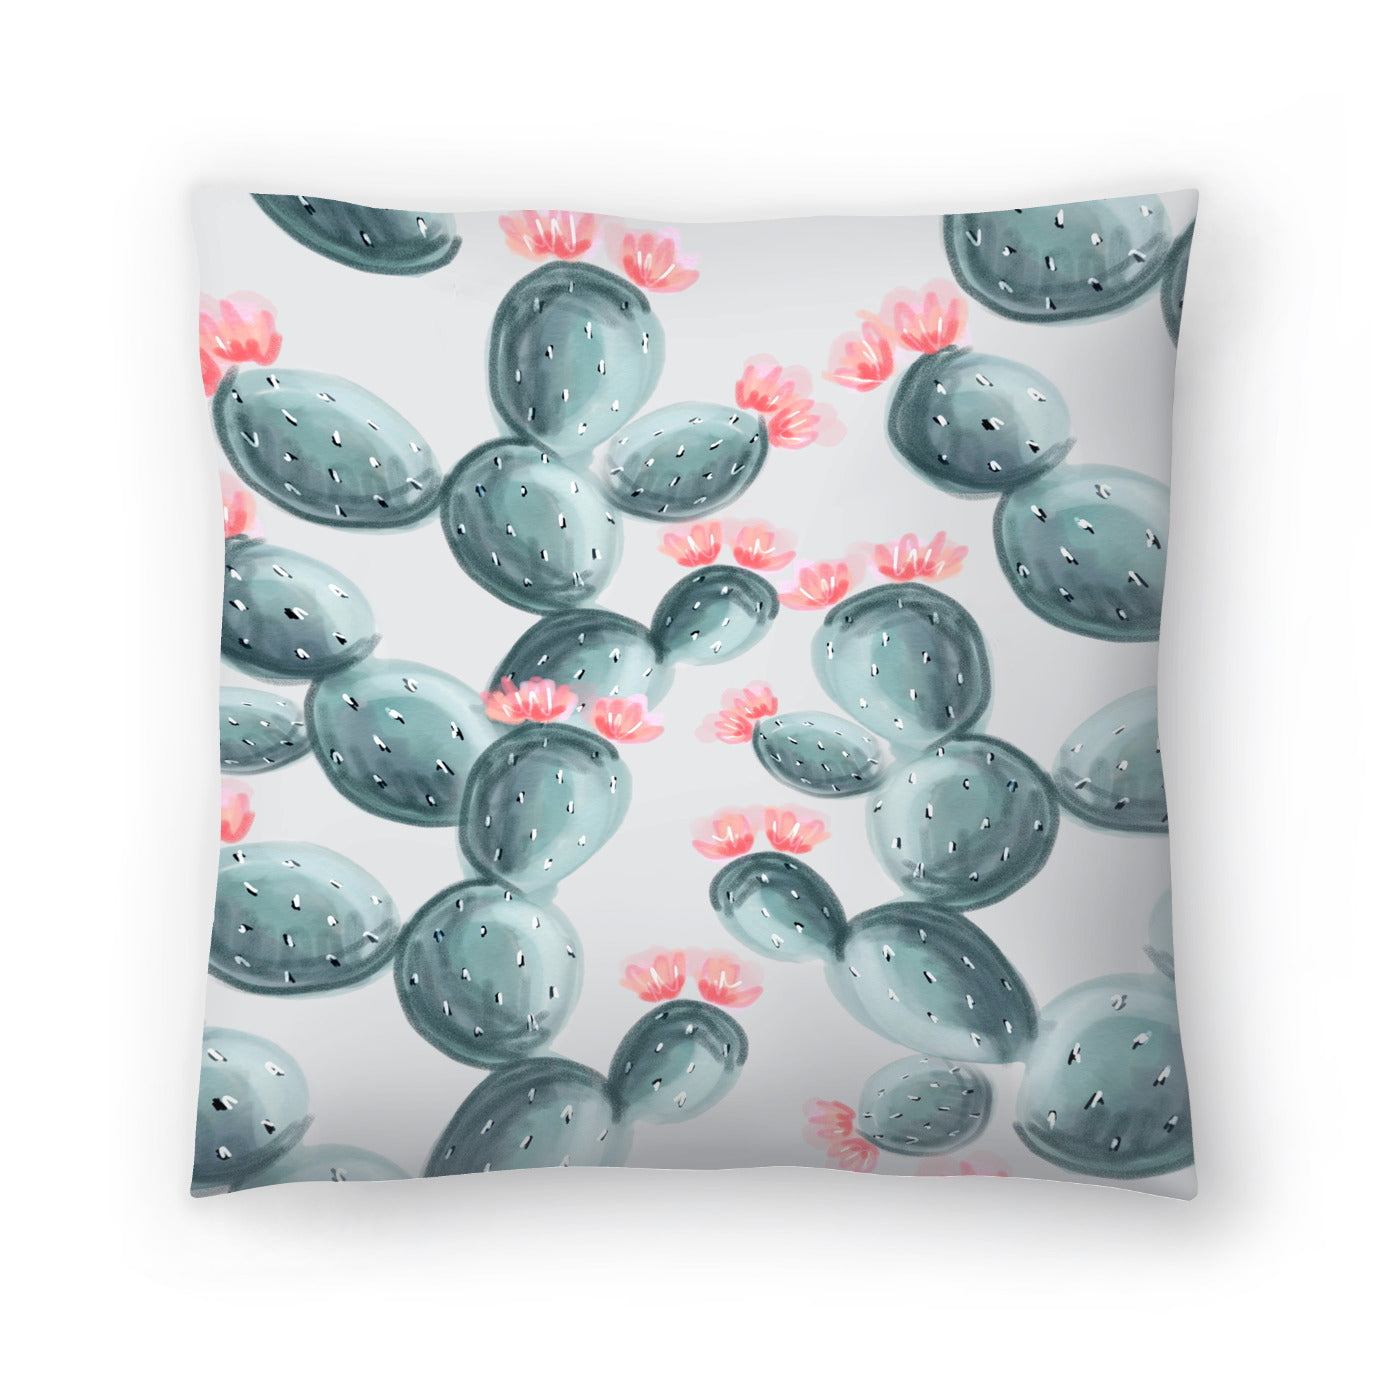 Painted Cactus by Emanuela Carratoni Decorative Pillow - Decorative Pillow - Americanflat